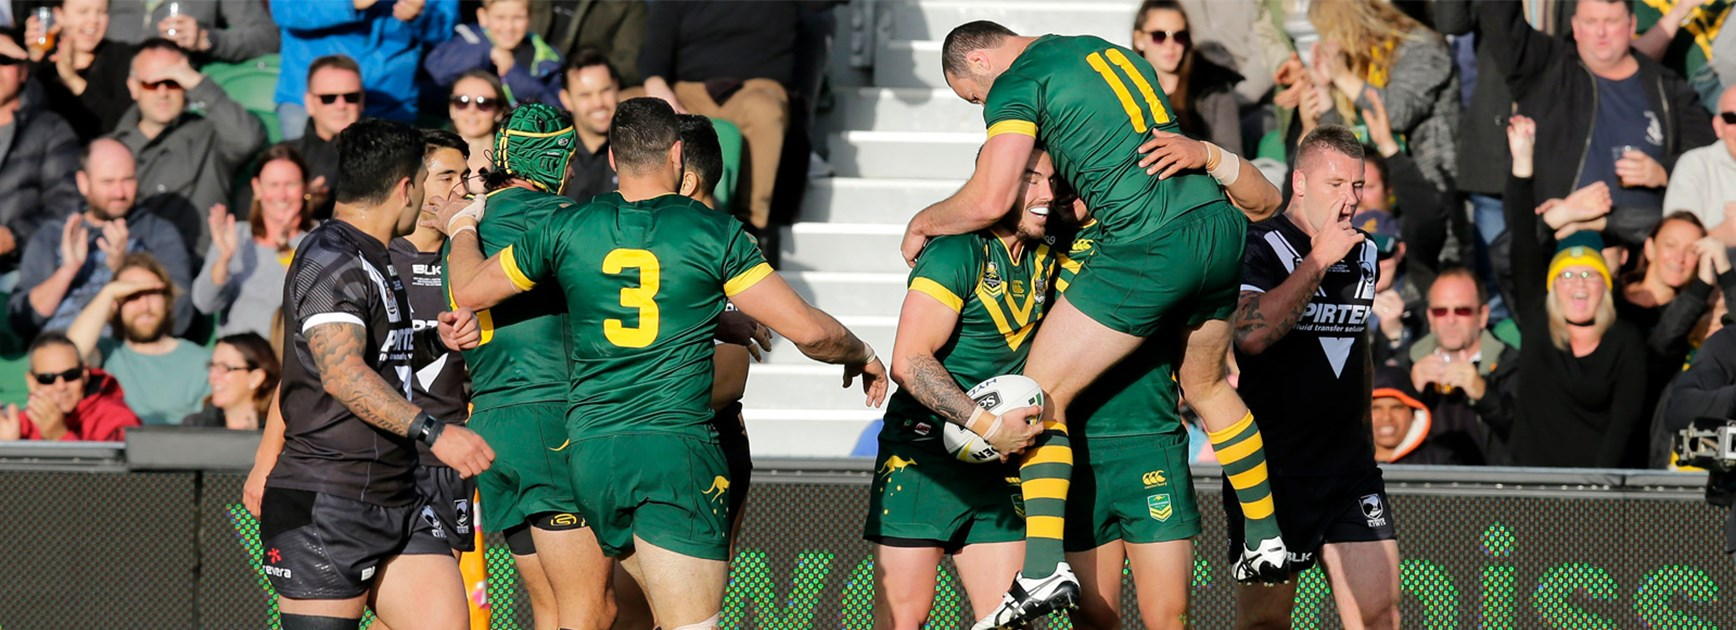 The Kangaroos celebrate Darius Boyd's opening try against New Zealand on Saturday.